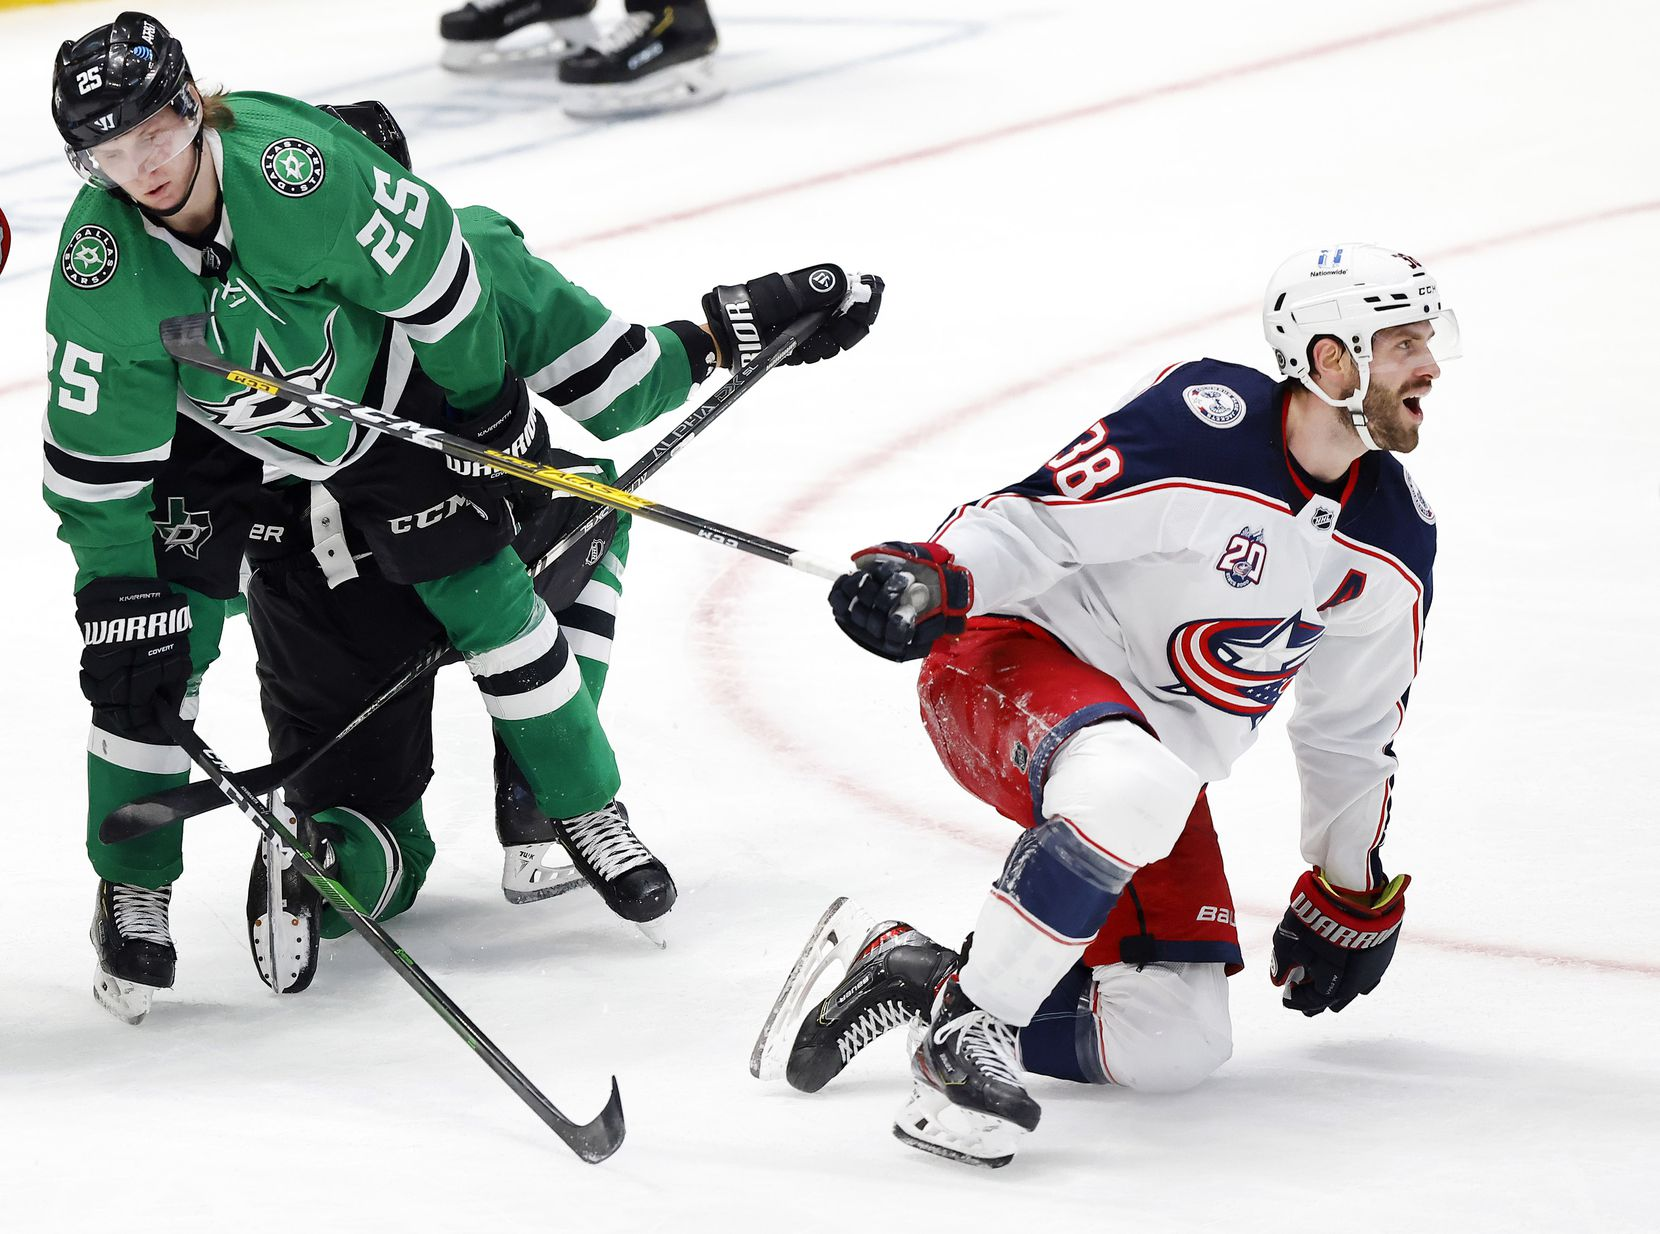 Columbus Blue Jackets center Boone Jenner (38) celebrates his second-period goal against Dallas Stars left wing Joel Kiviranta (25) at the American Airlines Center in Dallas, Thursday, March 4, 2021.